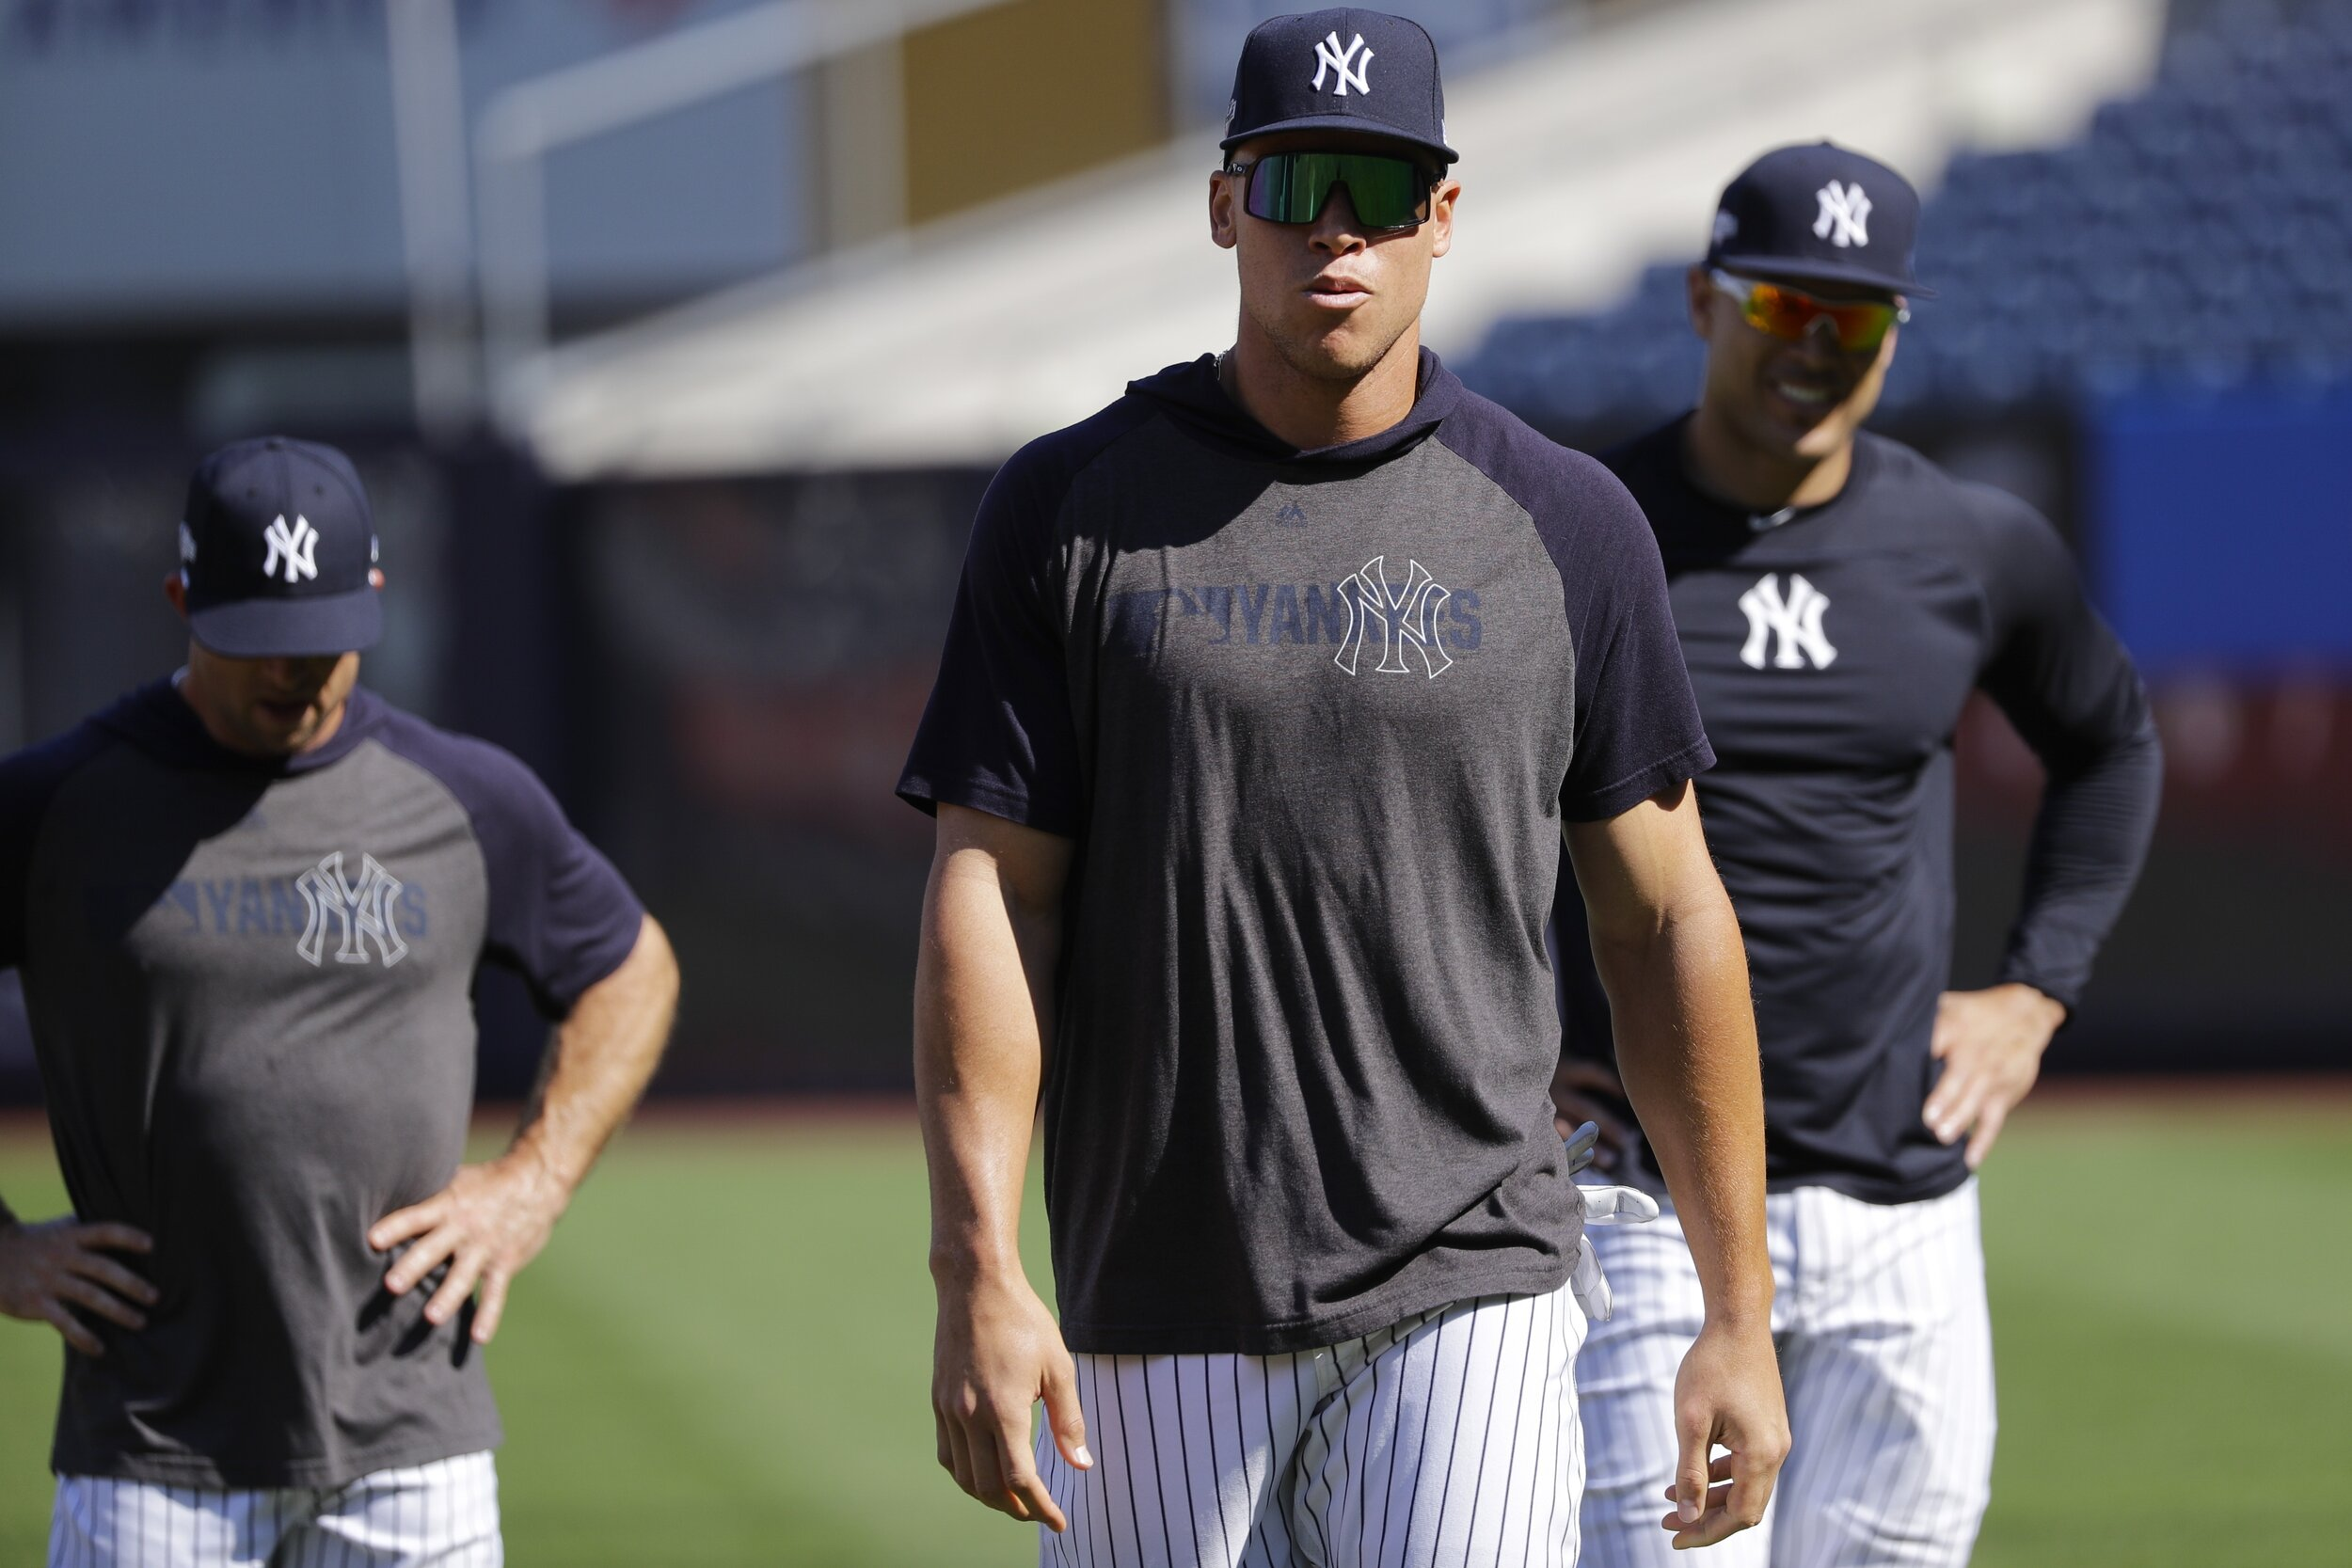 The Yankees racked up 103 wins, good enough for second best in the American League despite facing numerous injuries. Now with many of those players back and healthy, expectations are high for the post season, some fans saying championship or bust.  Photo from The Associated Press.